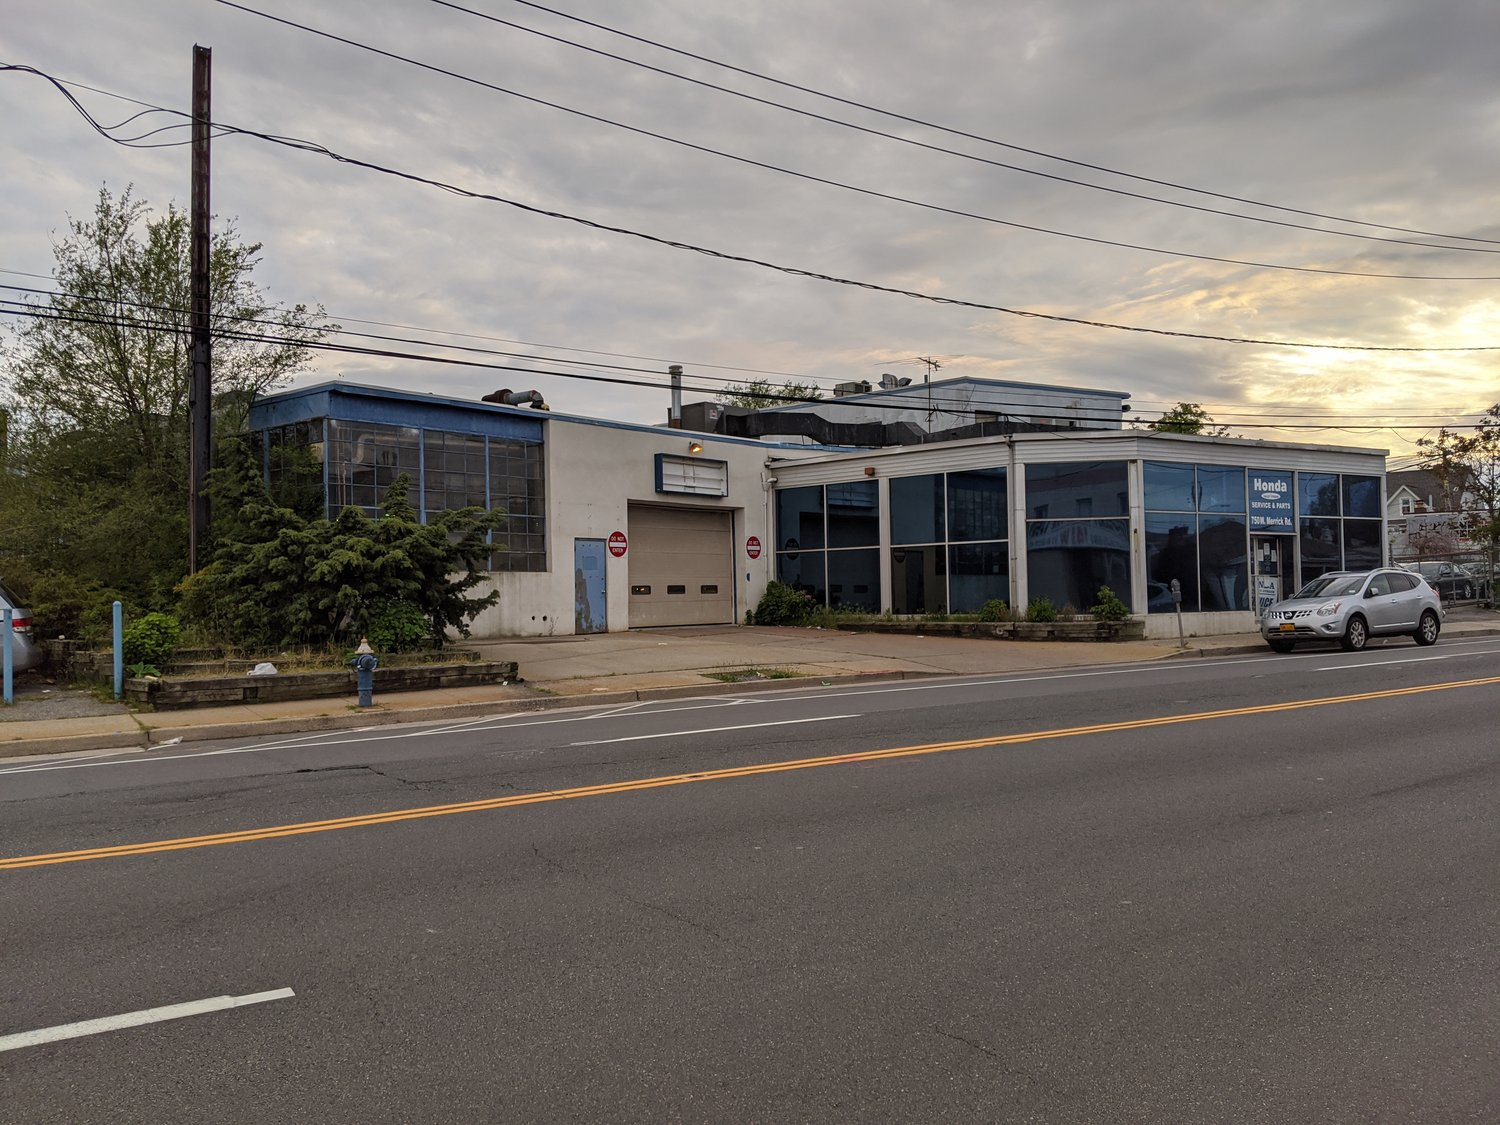 The Town of Hempstead Industrial Development Agency is mulling tax breaks for a storage facility slated to replace a West Merrick Road Honda dealership service center and storage lot.